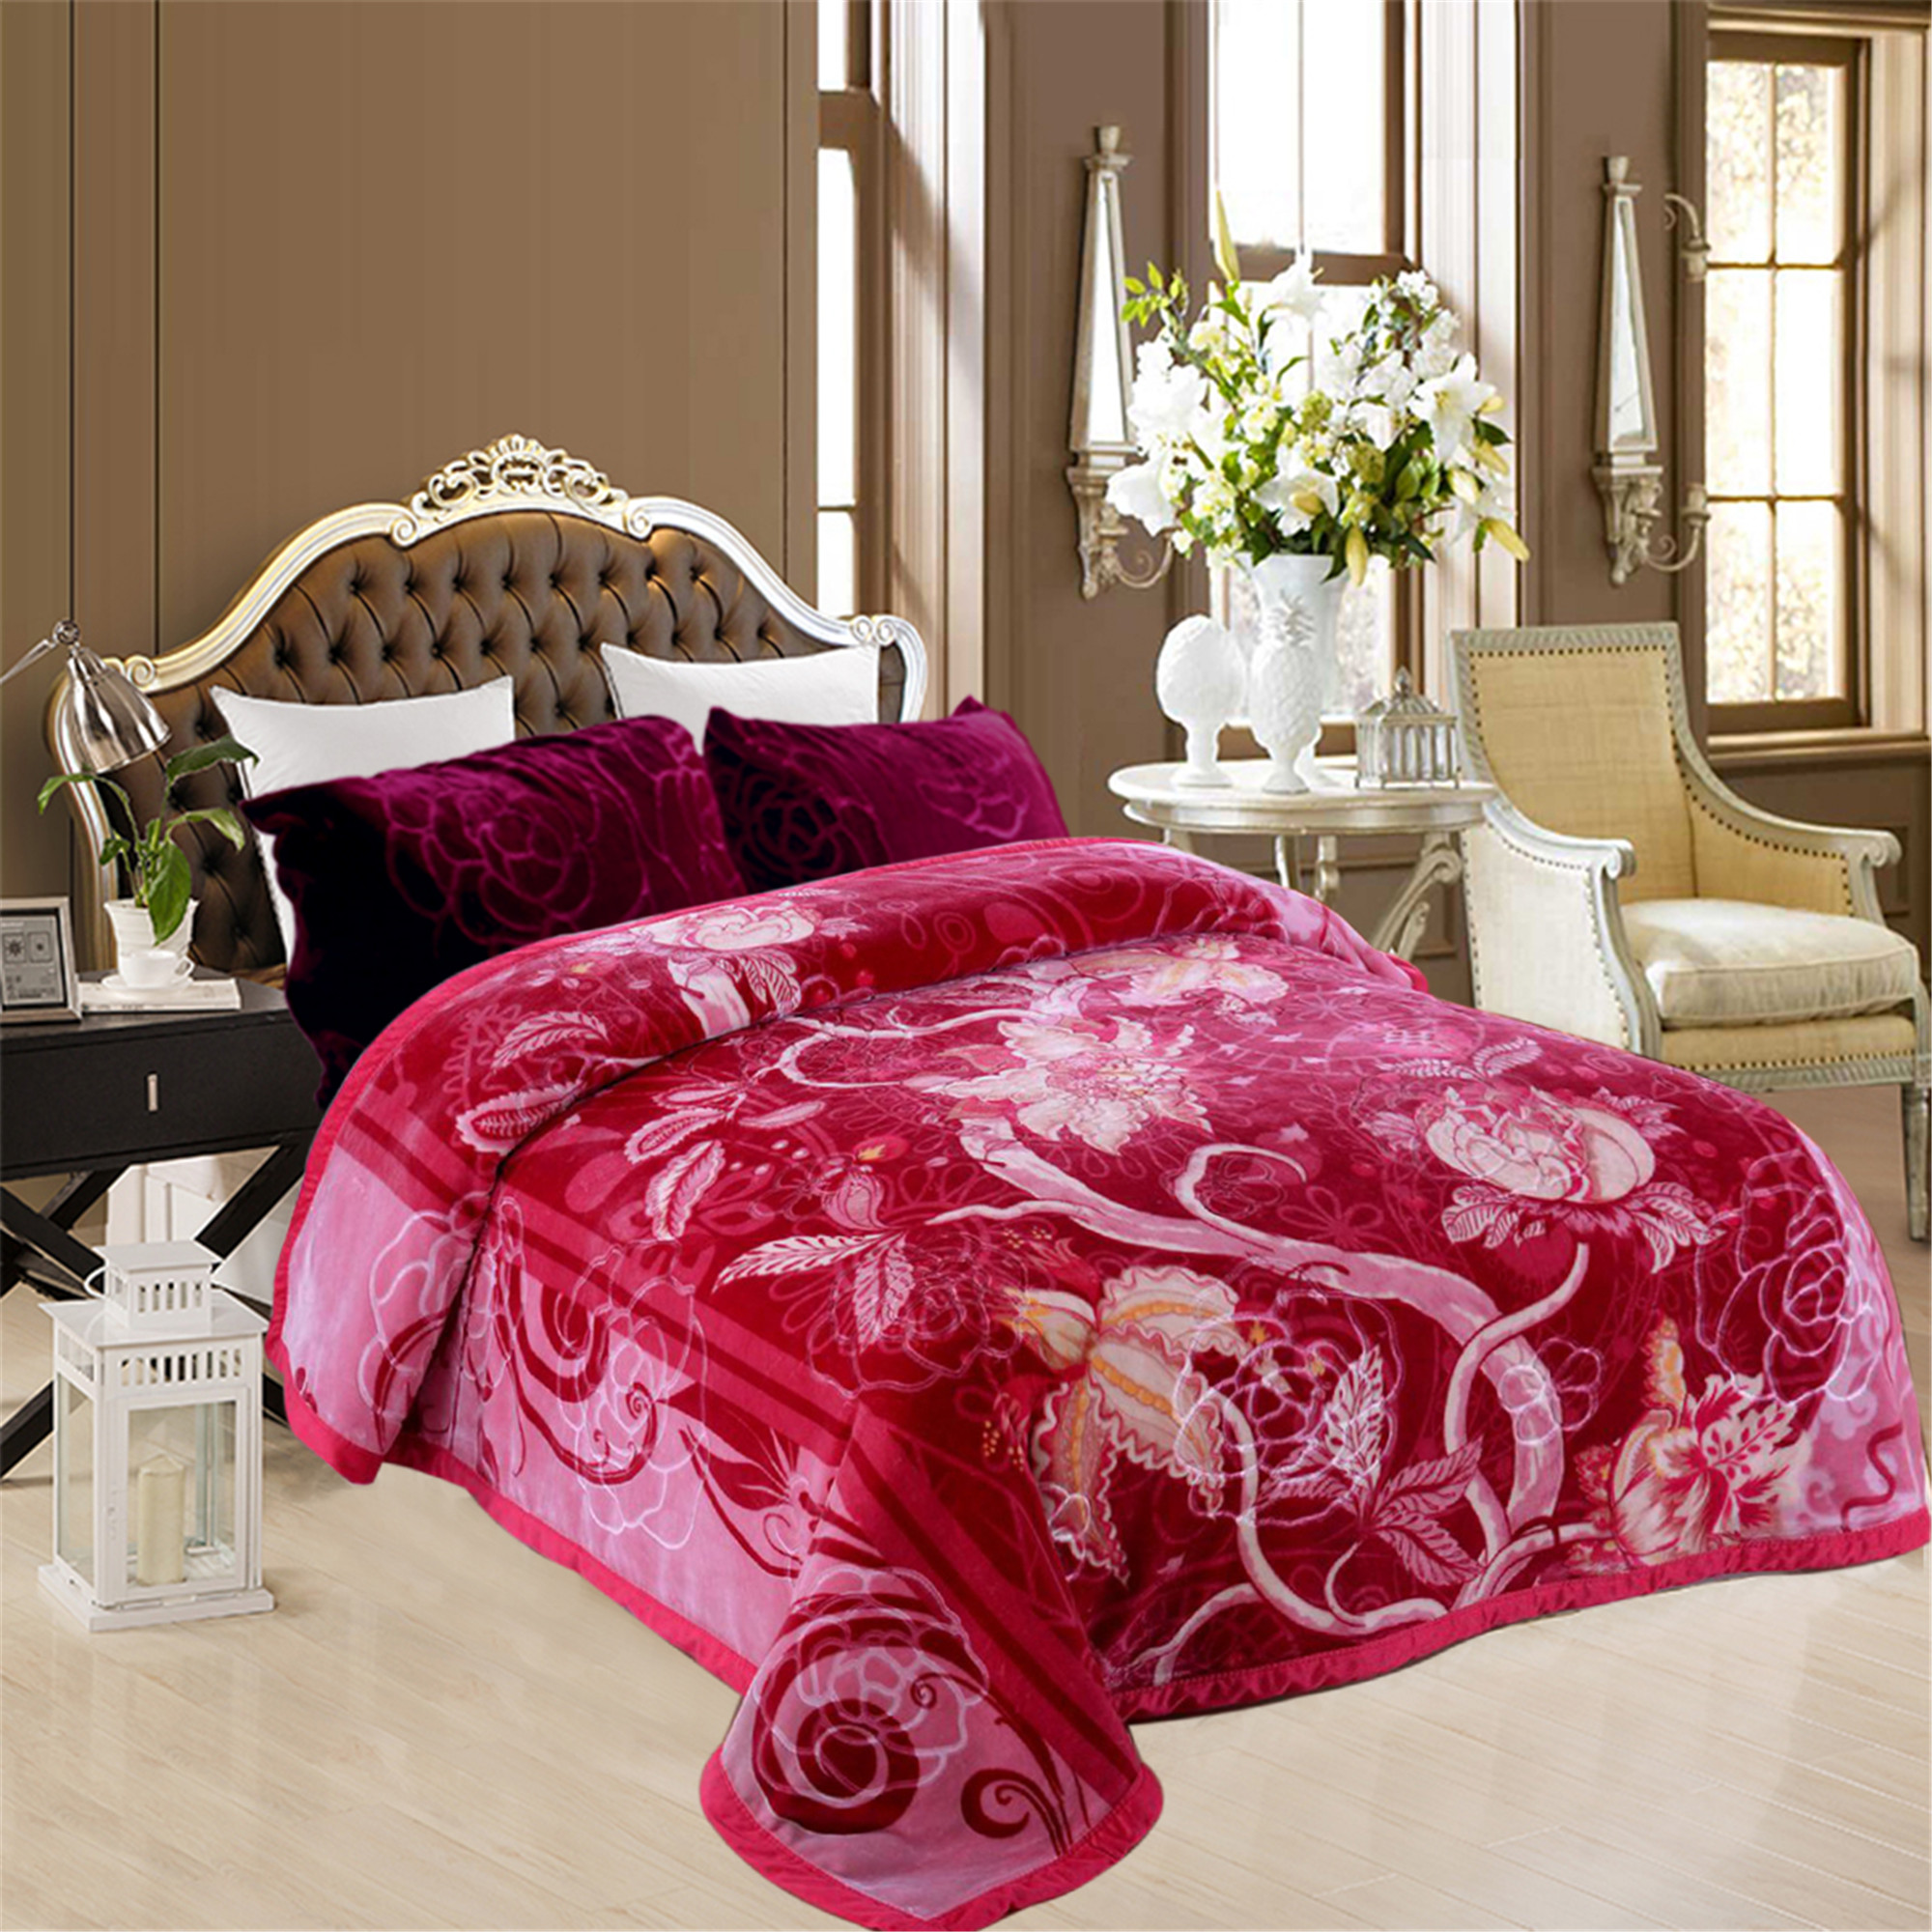 "Super Soft Plush Mink Bed Blanket 2 Ply Printed Fleece Blanket Queen 76""x85"""